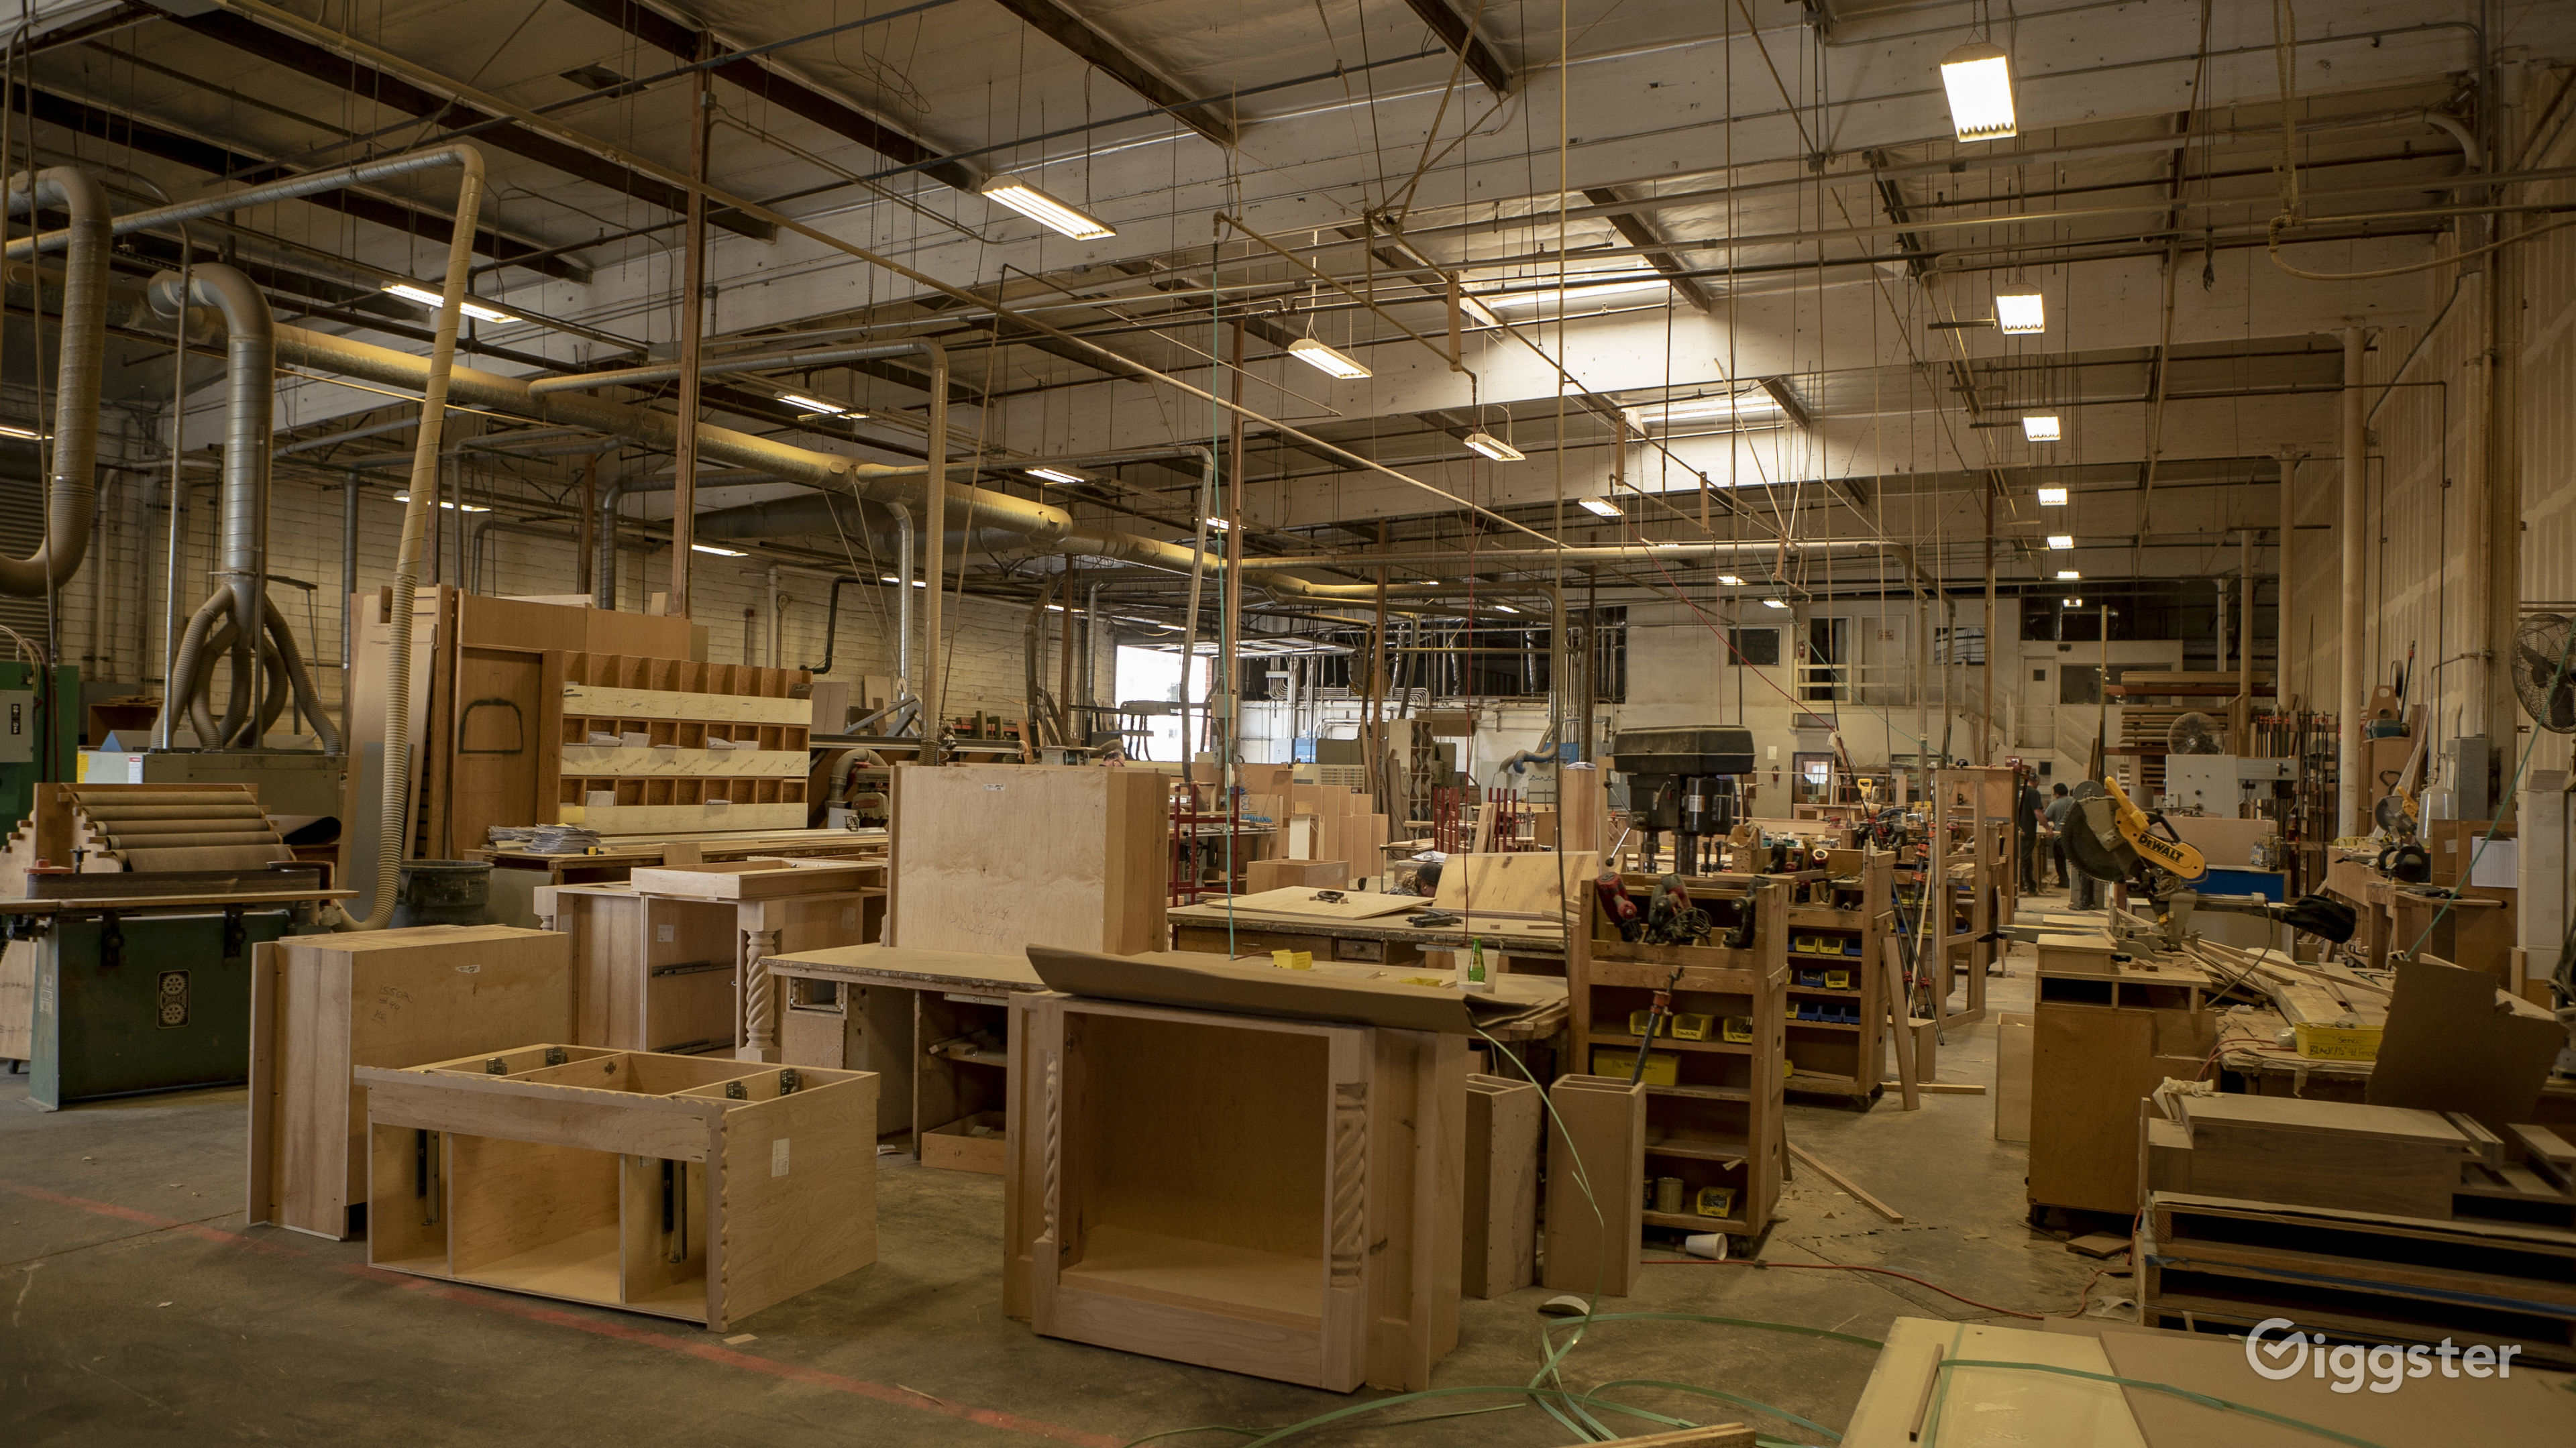 Woodworking Shop Rent This Location On Giggster